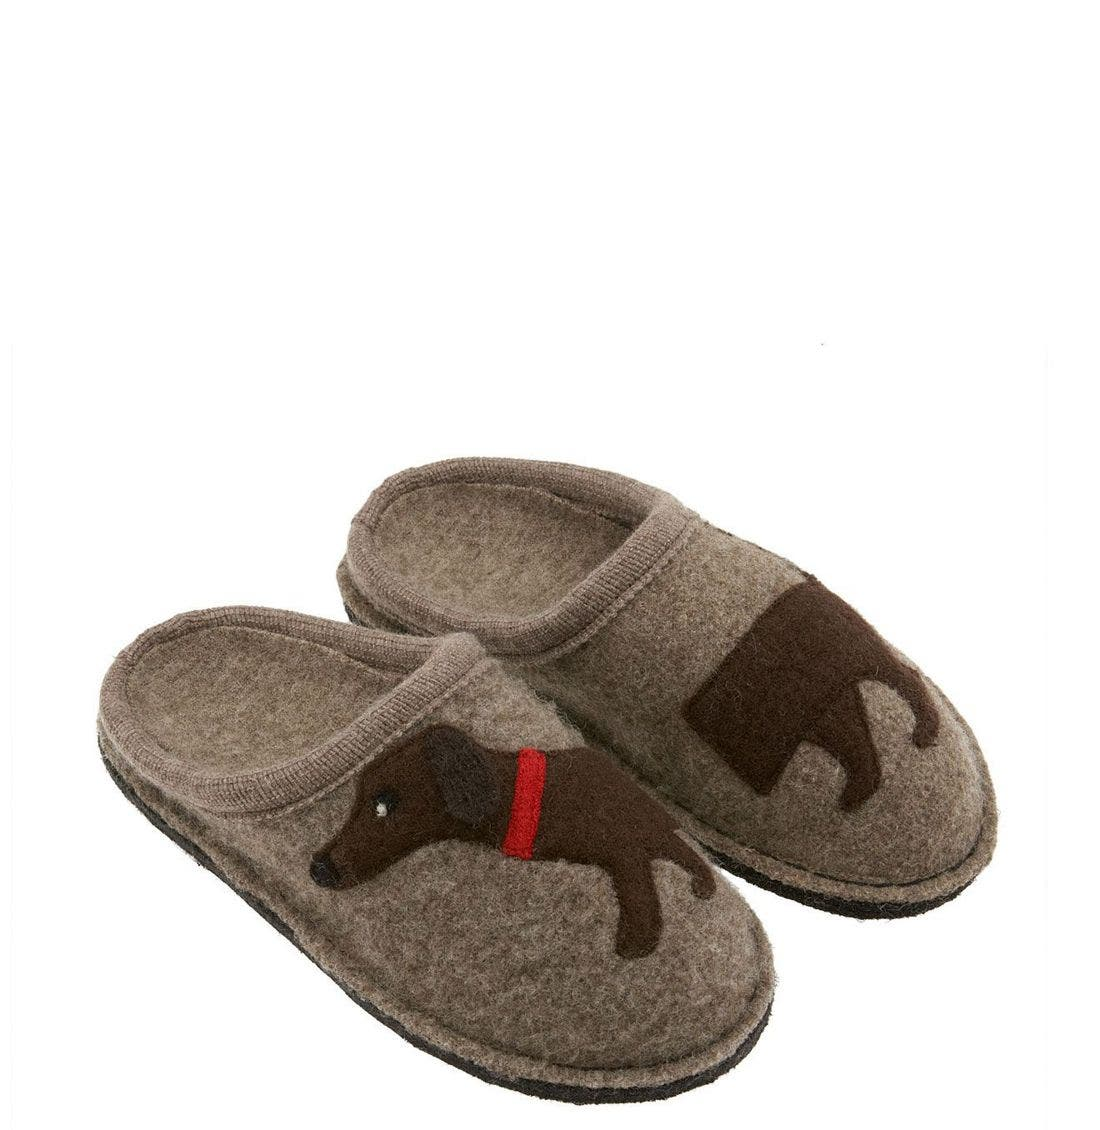 Haflinger 'Doggy' Slipper